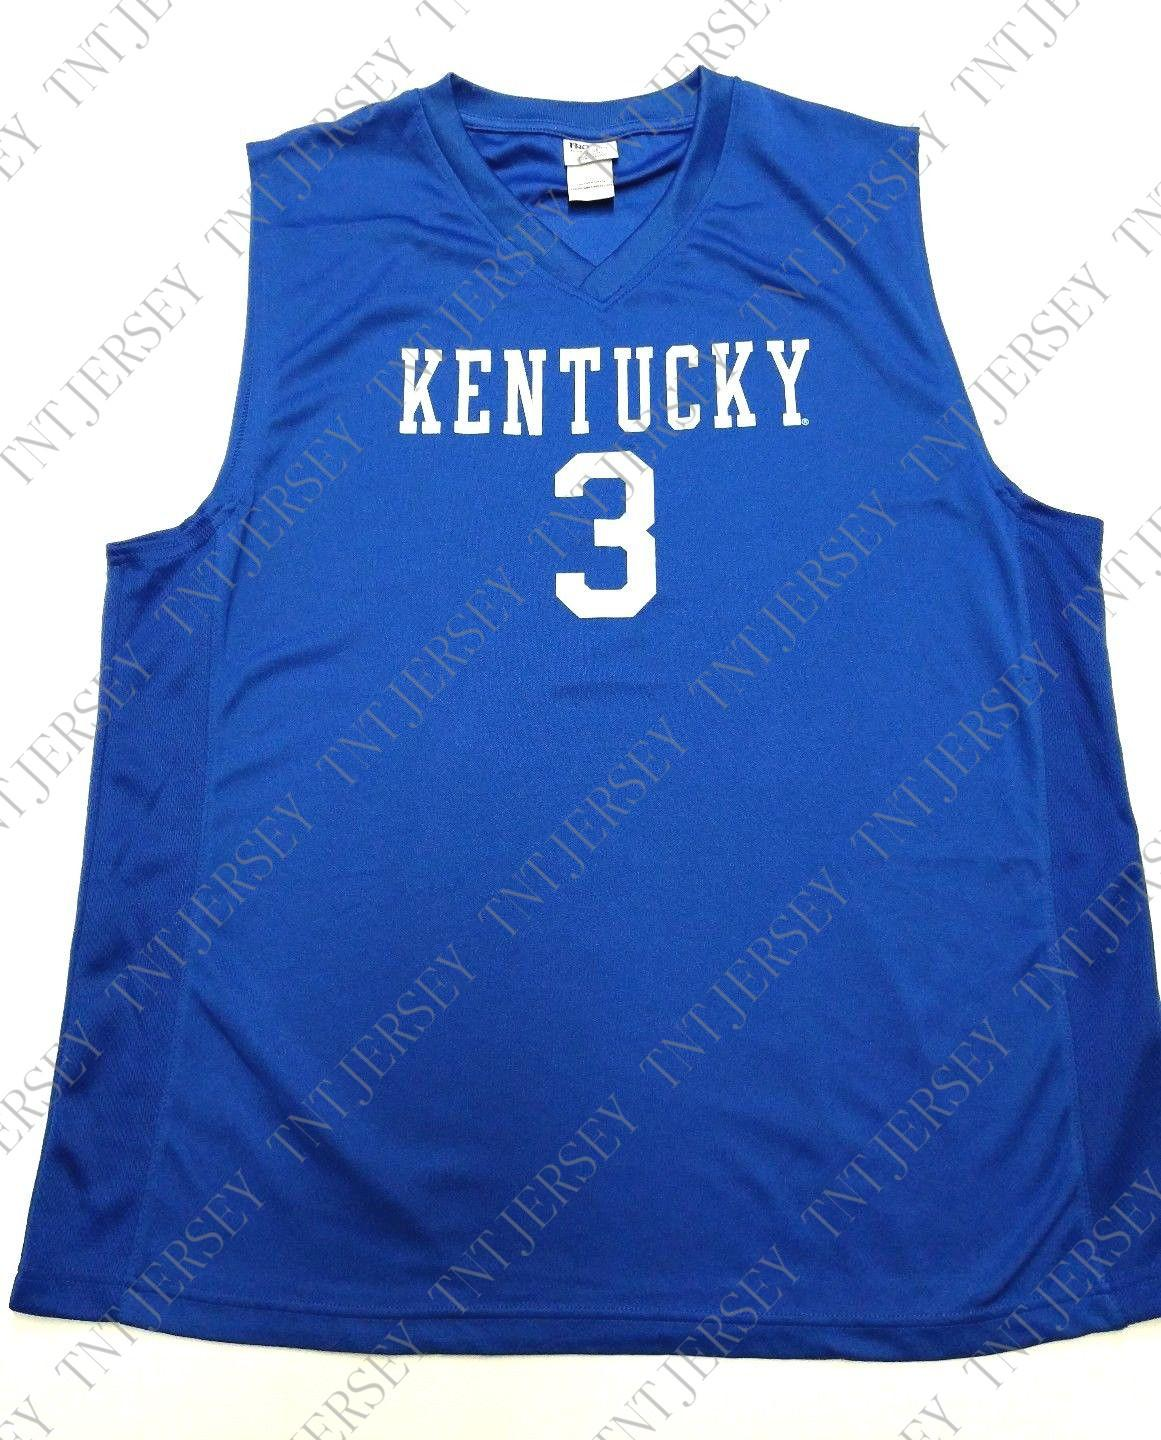 0f1b68f89 2019 Cheap Custom Kentucky Wildcats  3 Basketball Jersey Stitched Customize  Any Number Name MEN WOMEN YOUTH XS 5XL From Tntjersey